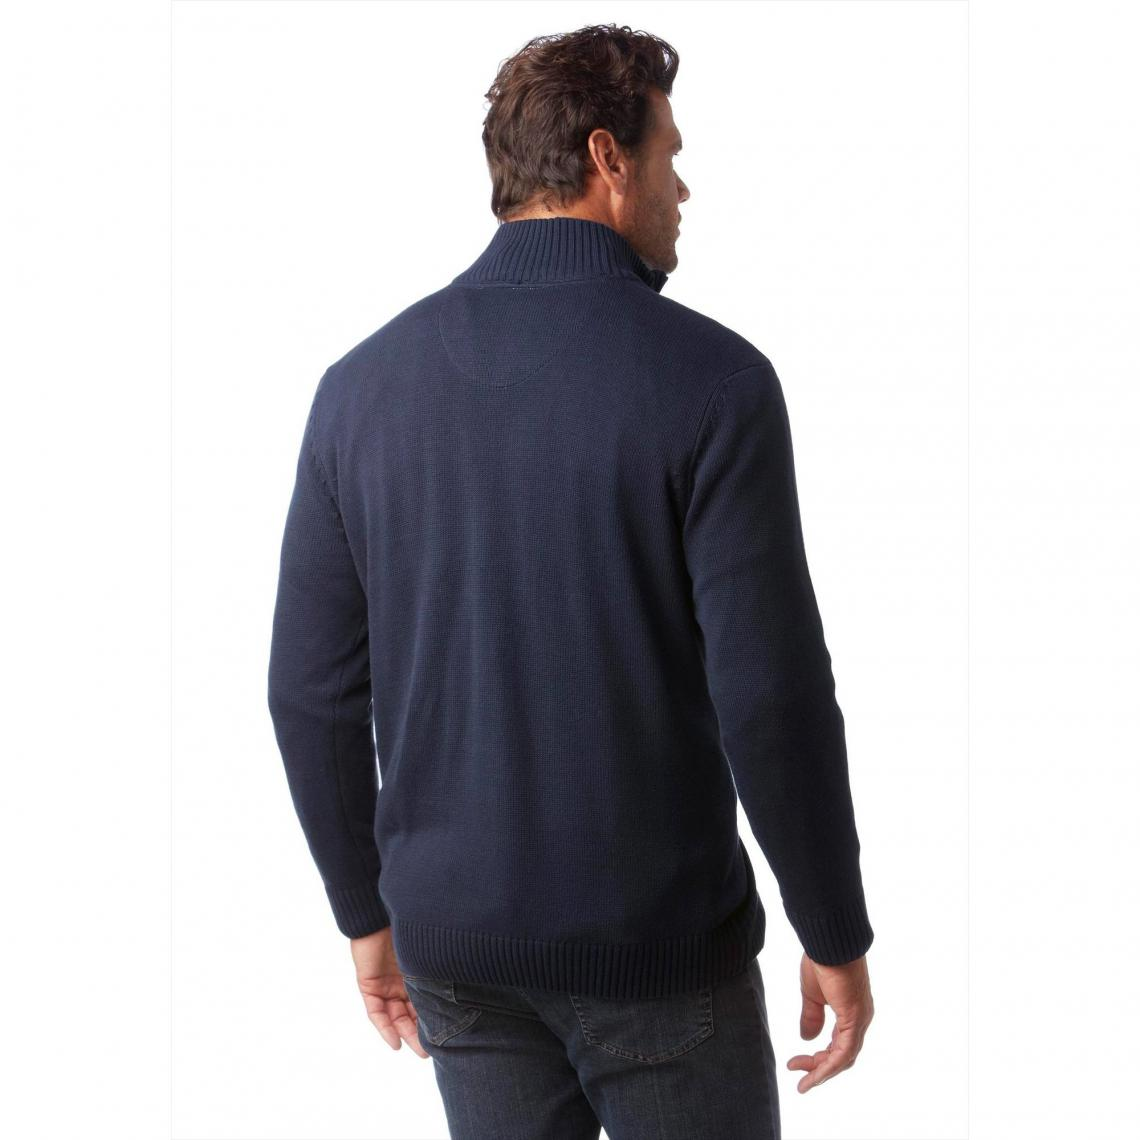 3 suisses pull homme col camionneur